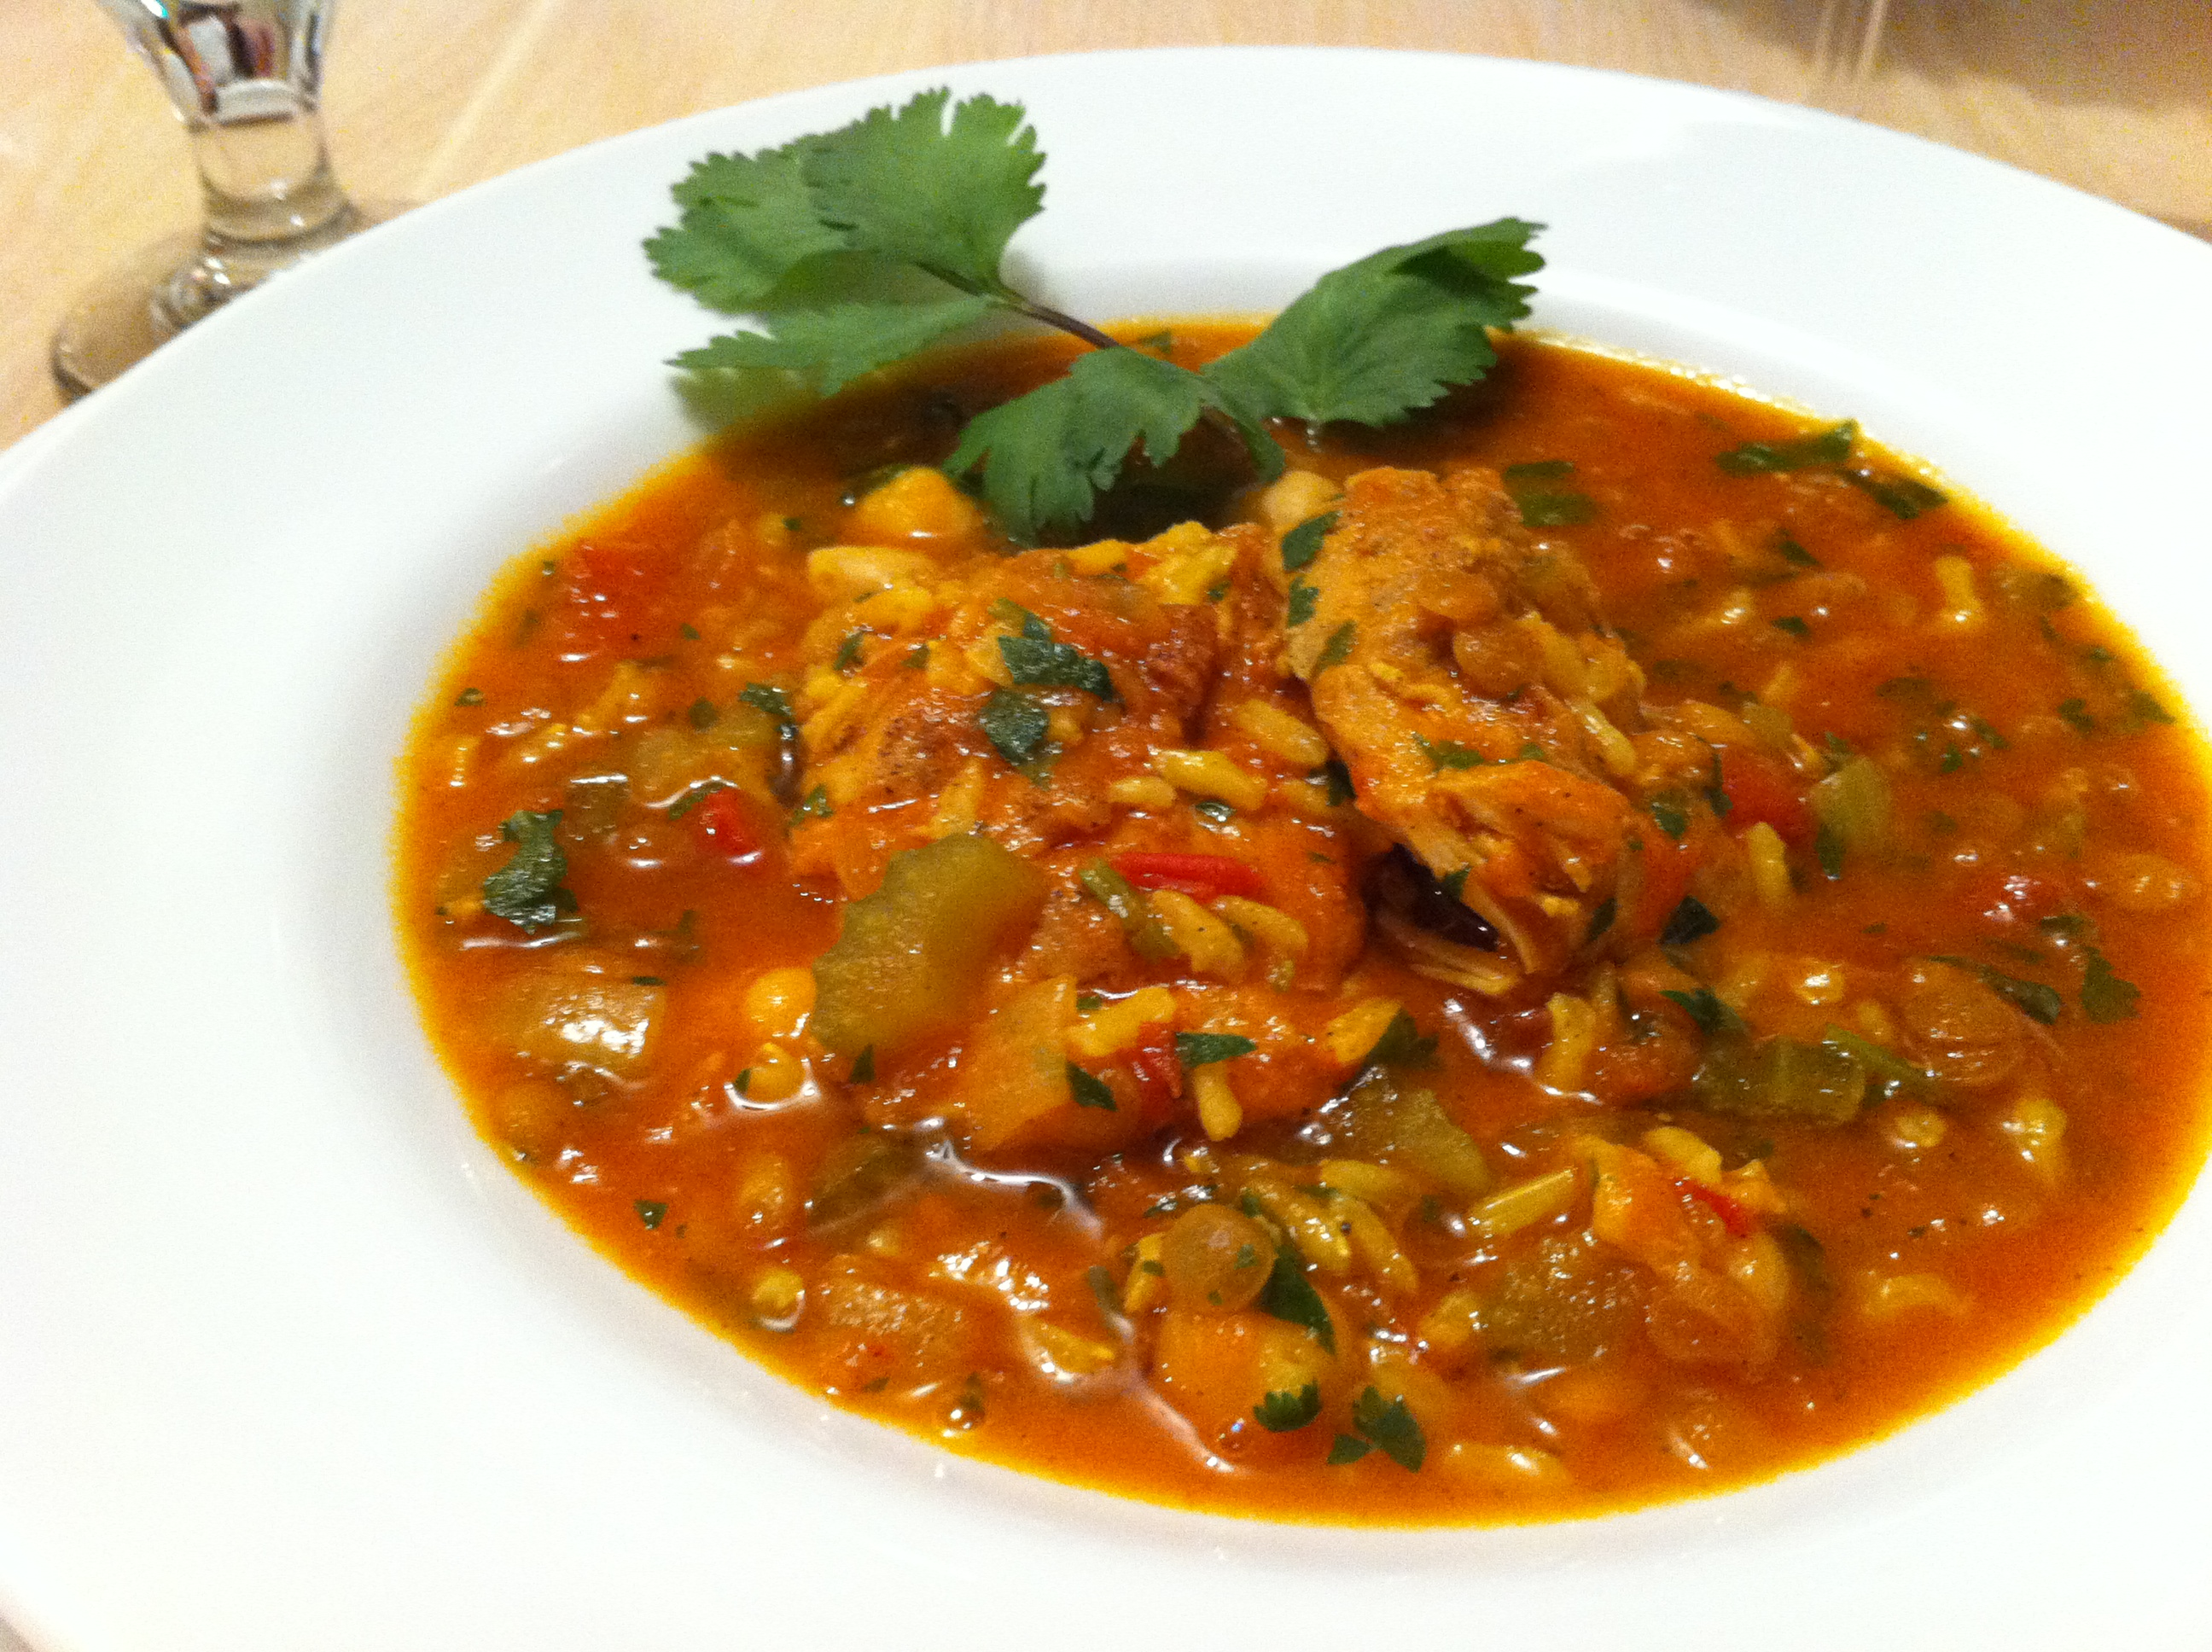 Moroccan Chickpea, Lentil and Chicken Stew - Andicakes